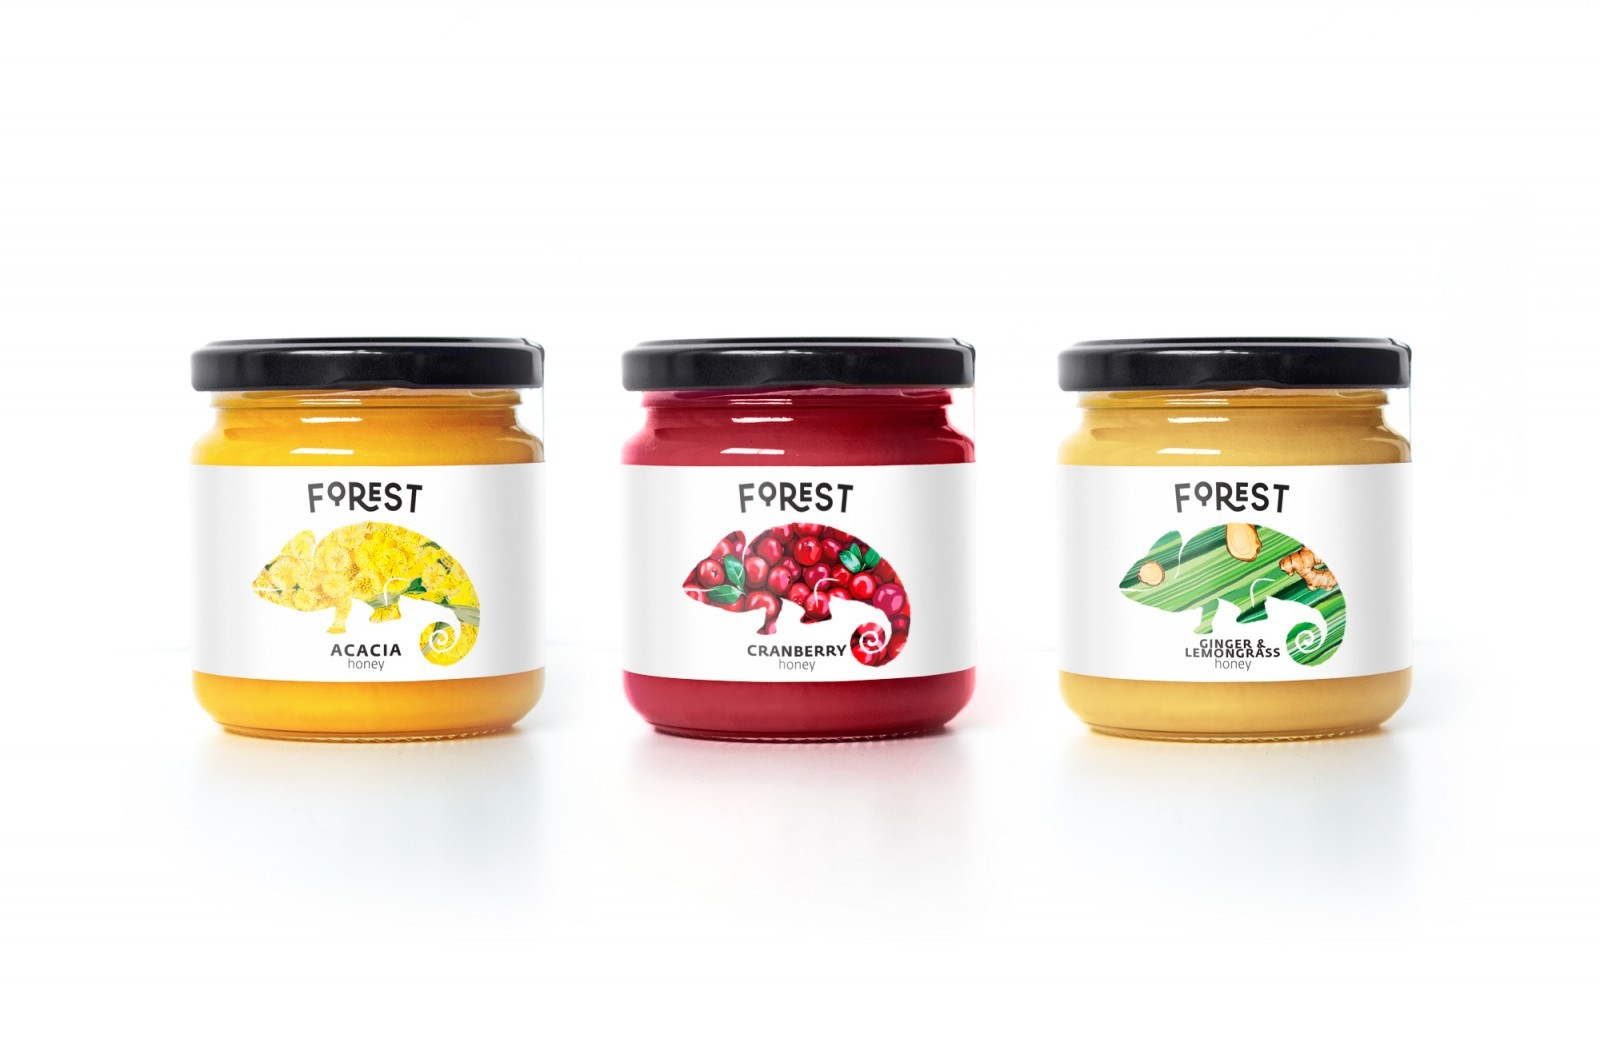 Forest Goods Brand Identity and Packaging Design by Room.11 Agency